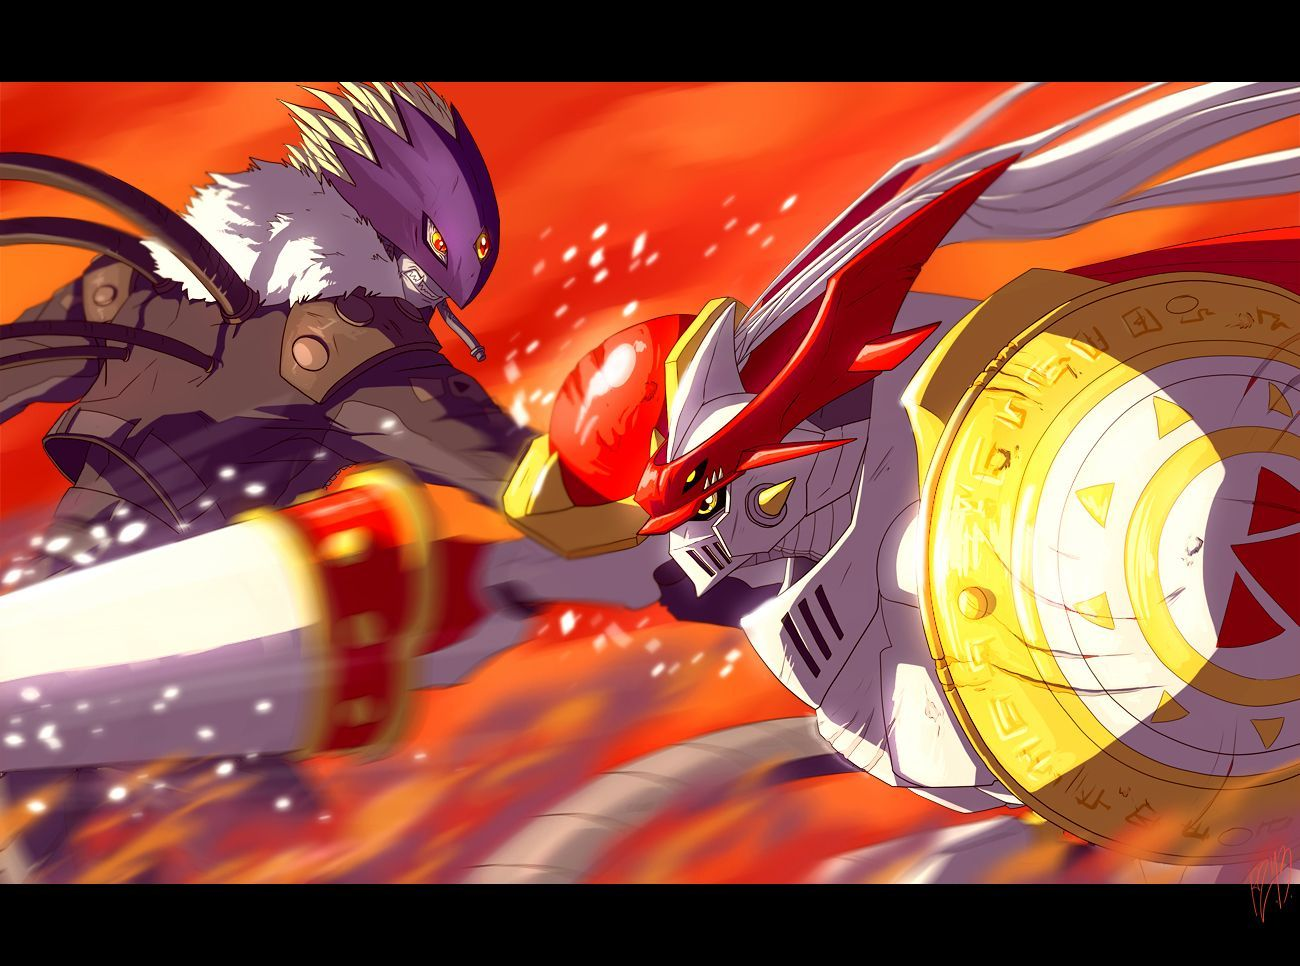 1300x966 The knight and the demon by TheNightmareDragon.deviantart ...